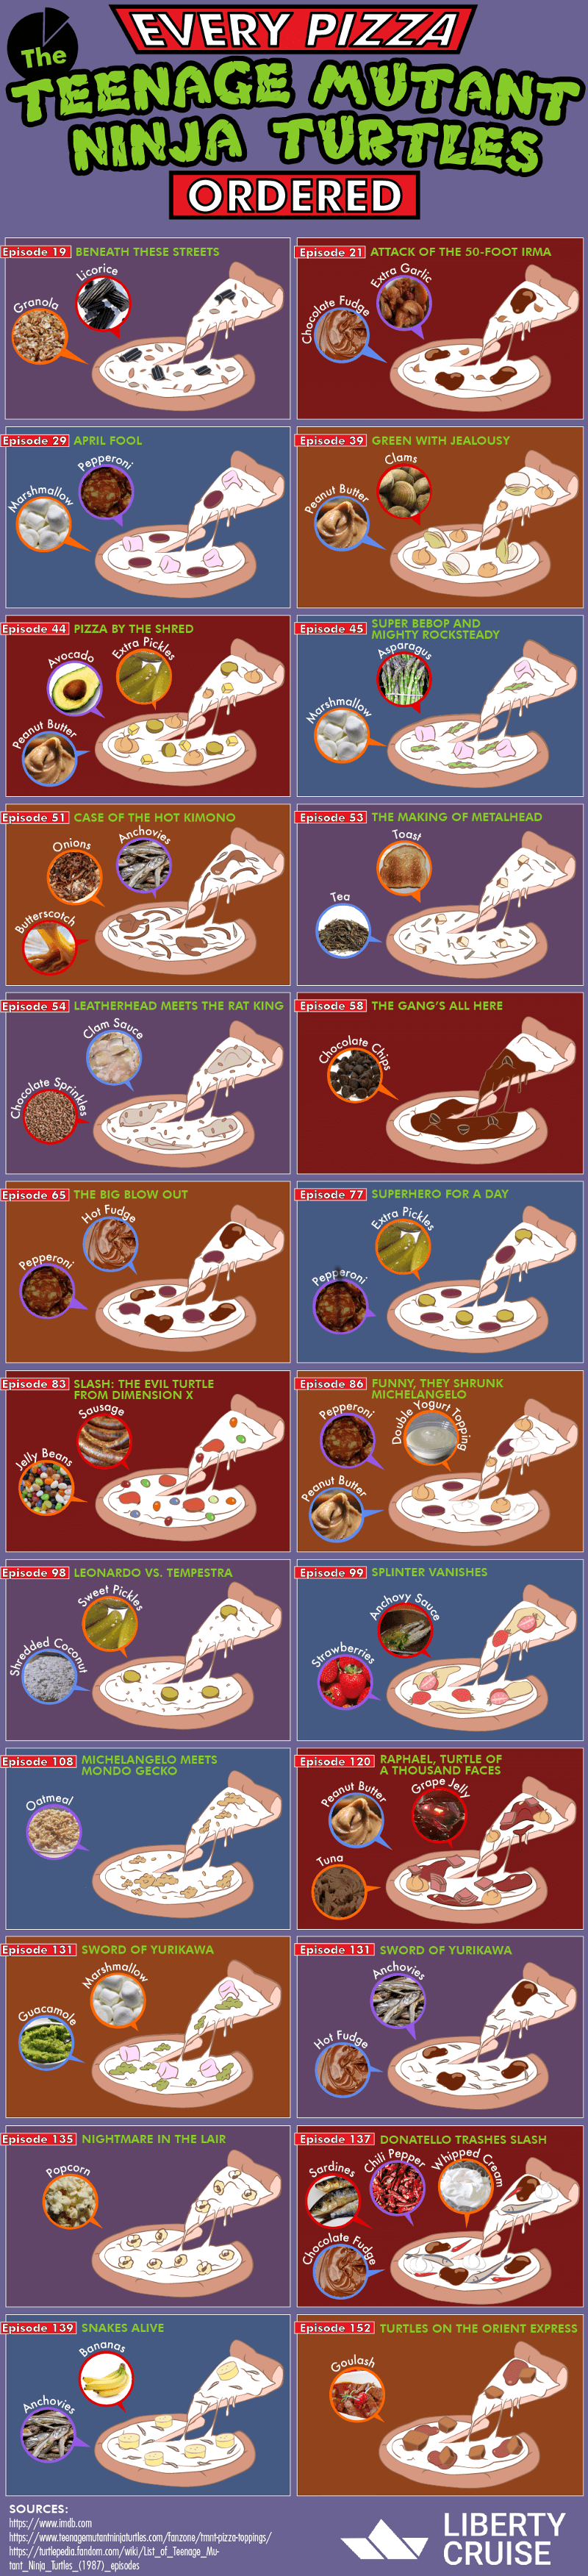 The Teenage Mutant Ninja Turtles' Much-Loved Pizza Menu - Infographic